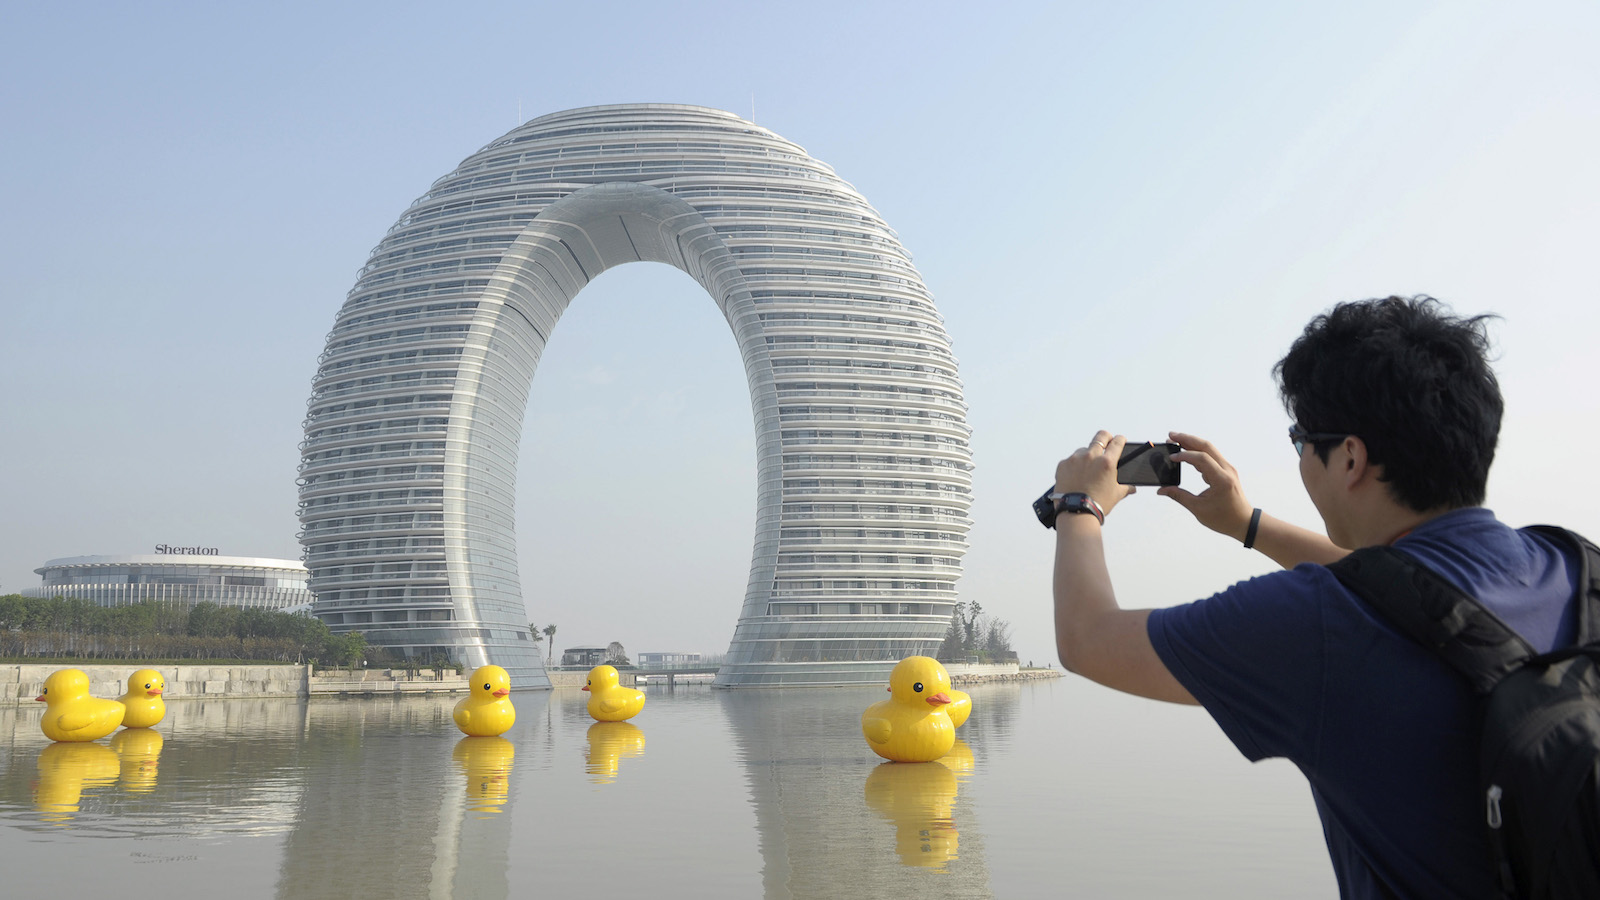 "A man takes pictures of the Sheraton Huzhou Hot Spring Resort, or ""Moon Hotel"", behind replicas of the rubber duck by Dutch conceptual artist Florentijn Hofman on Taihu Lake, in Huzhou, Jiangsu province November 6, 2013. The 27-storey luxury hotel, which was designed by Chinese architecture Ma Yansong, opened to the public in October 2013. The hotel is known in China by its nicknames such as ""Doughnut Hotel"" and ""Horseshoe Hotel"", local media reported. Picture taken November 6, 2013. REUTERS/Sean Yong (CHINA - Tags: SOCIETY TRAVEL) - RTX153NP"